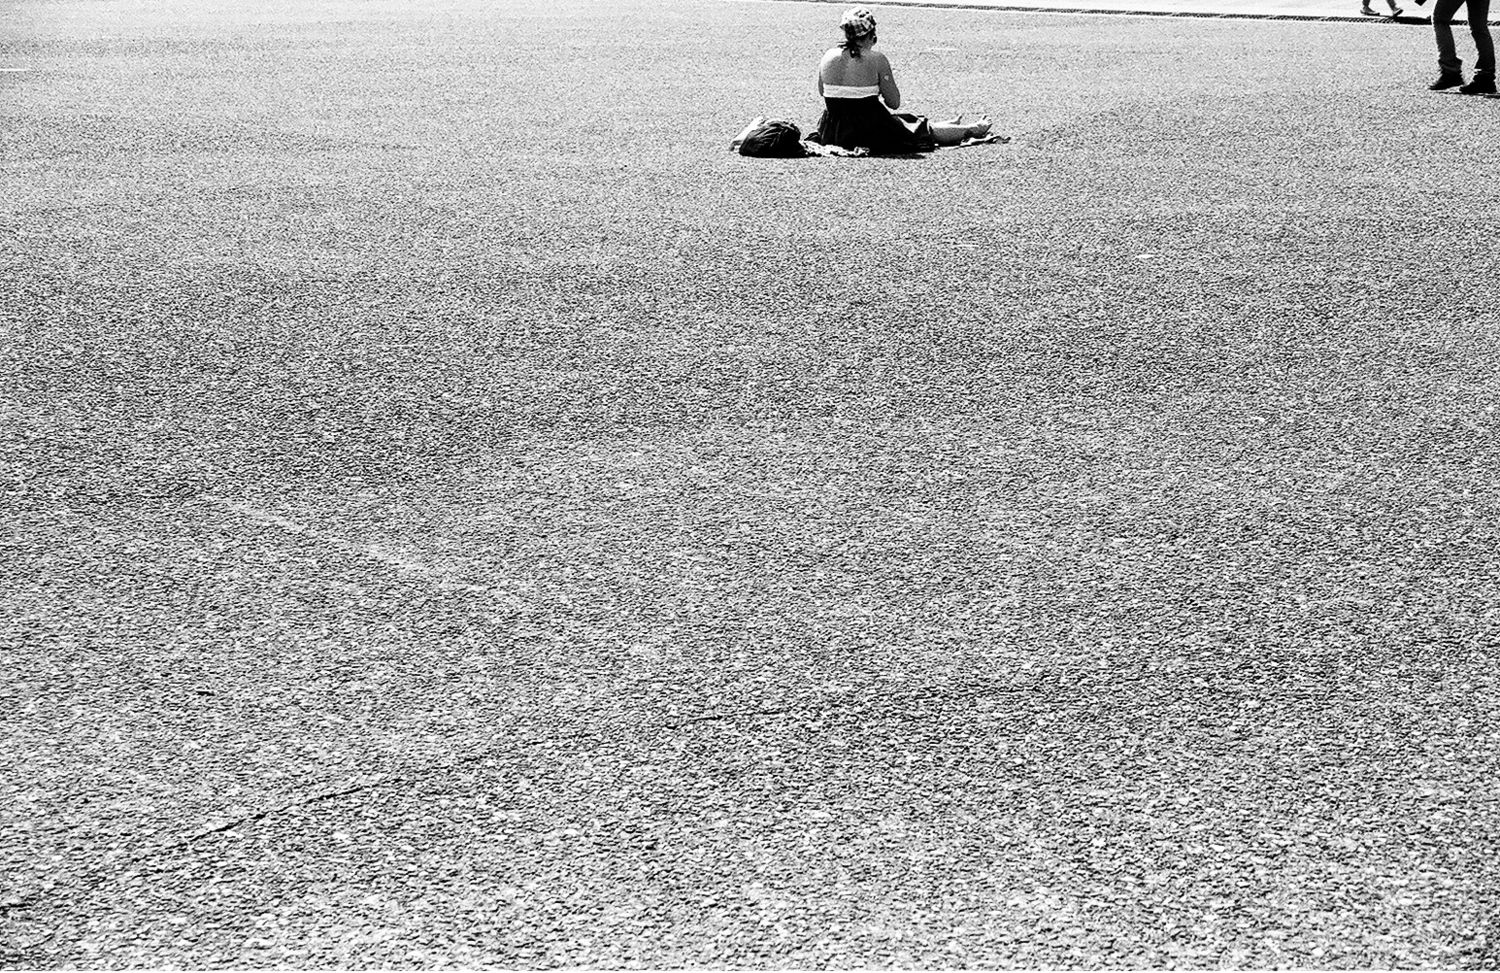 Sunbather, Florence 2010   Edition 1 of 2